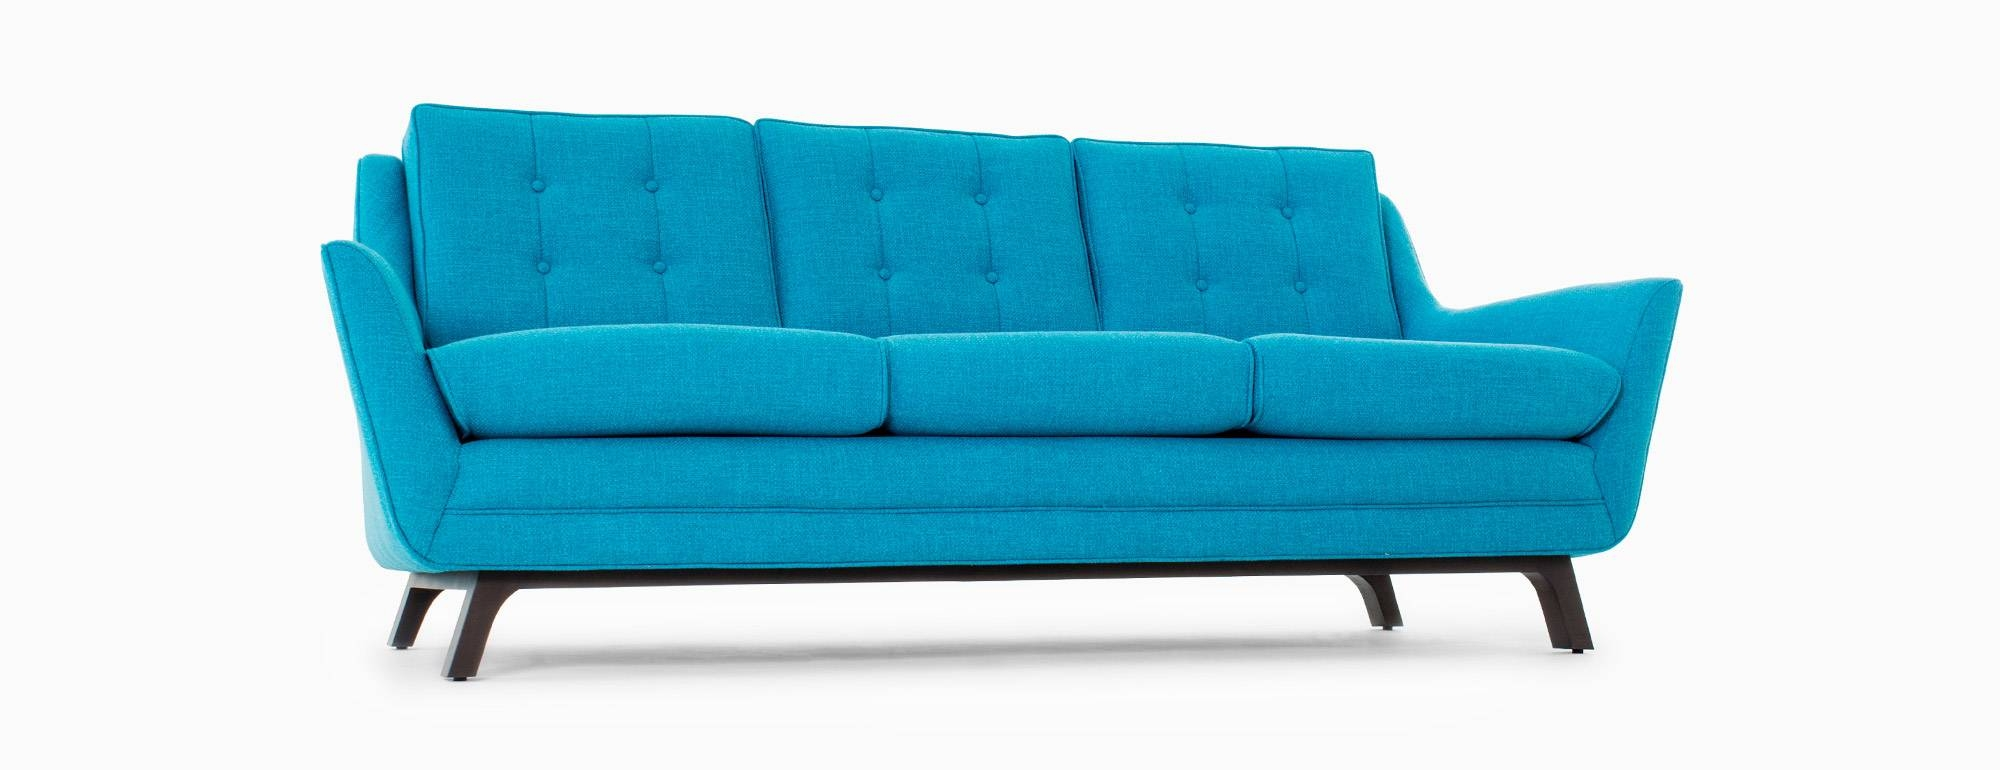 Eastwood Sofa | Joybird regarding Stratford Sofas (Image 6 of 30)